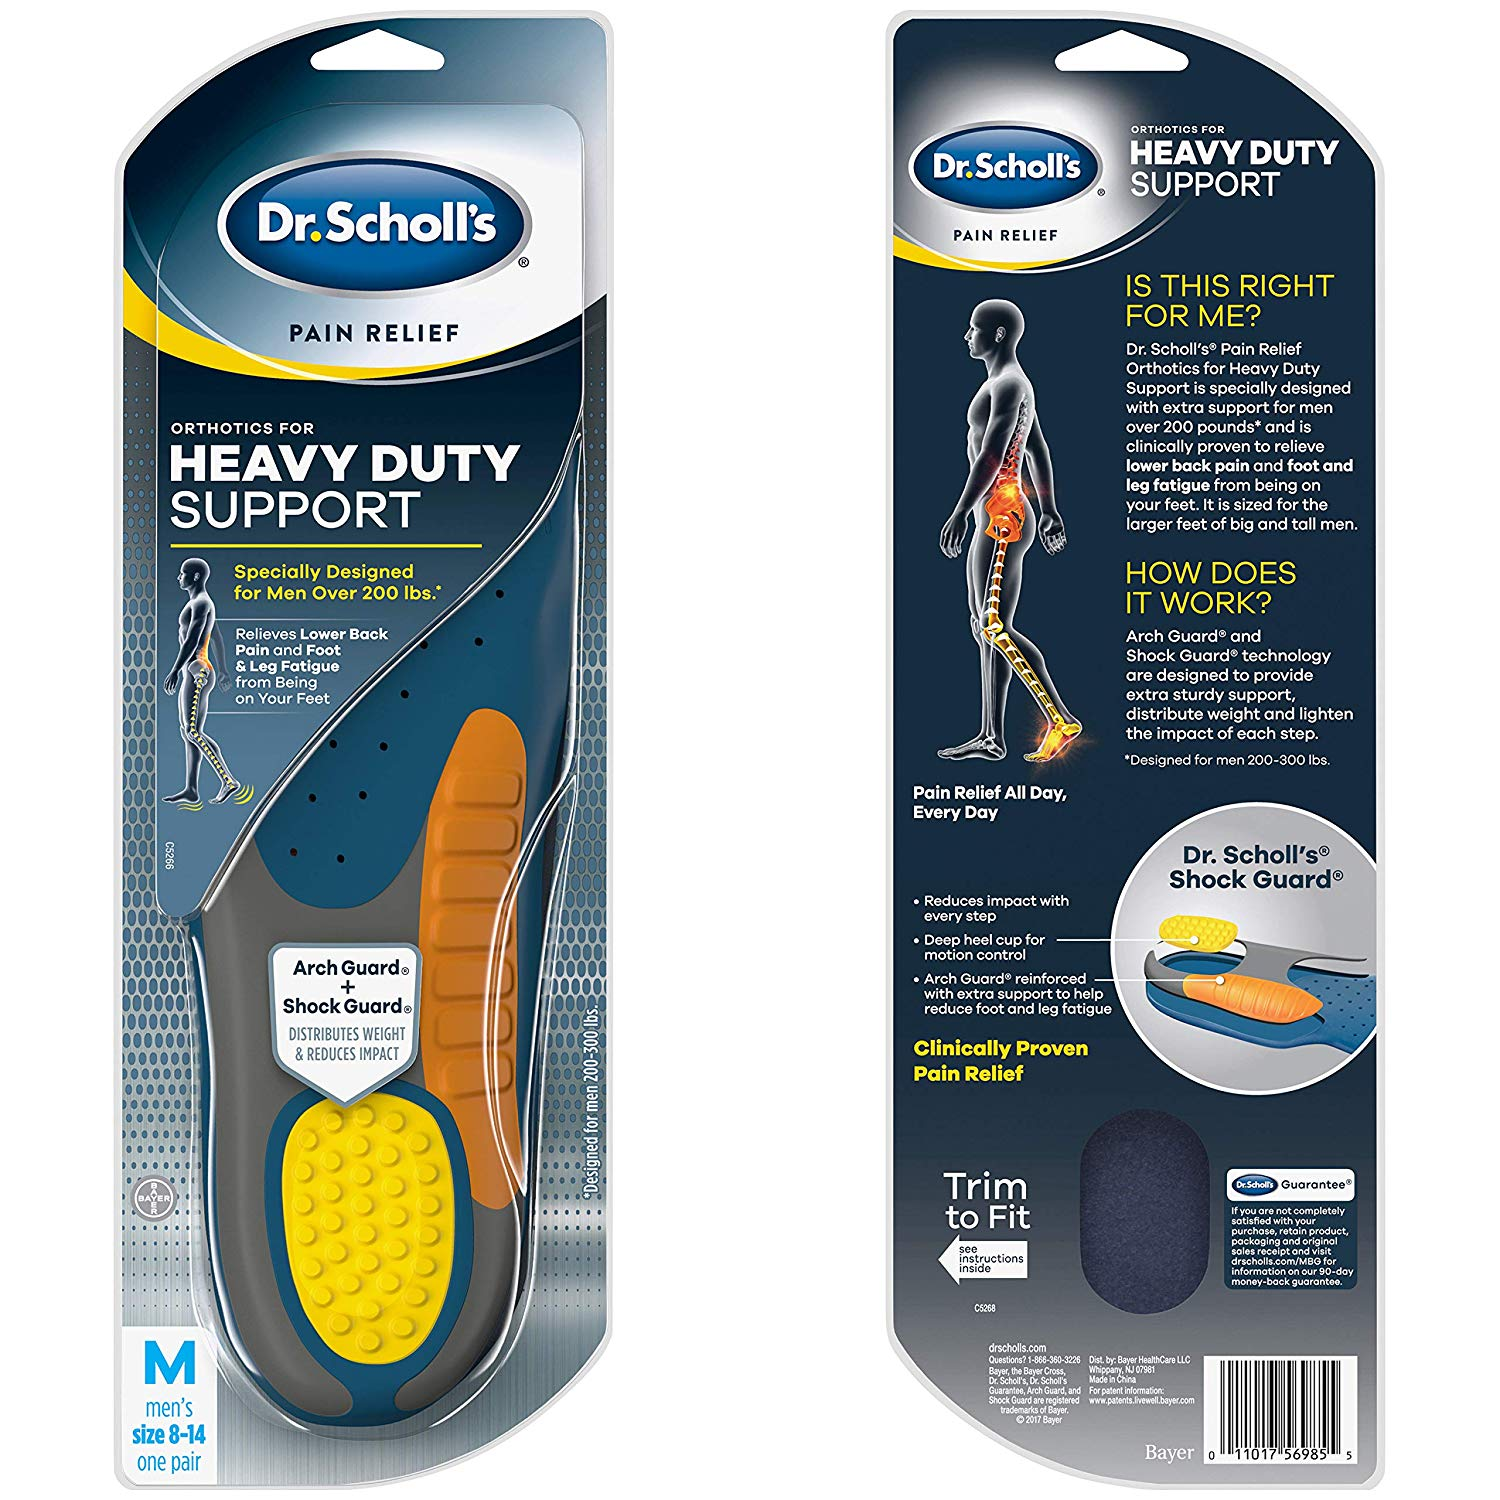 DrScholl'sHeavyDutySupportPackaging